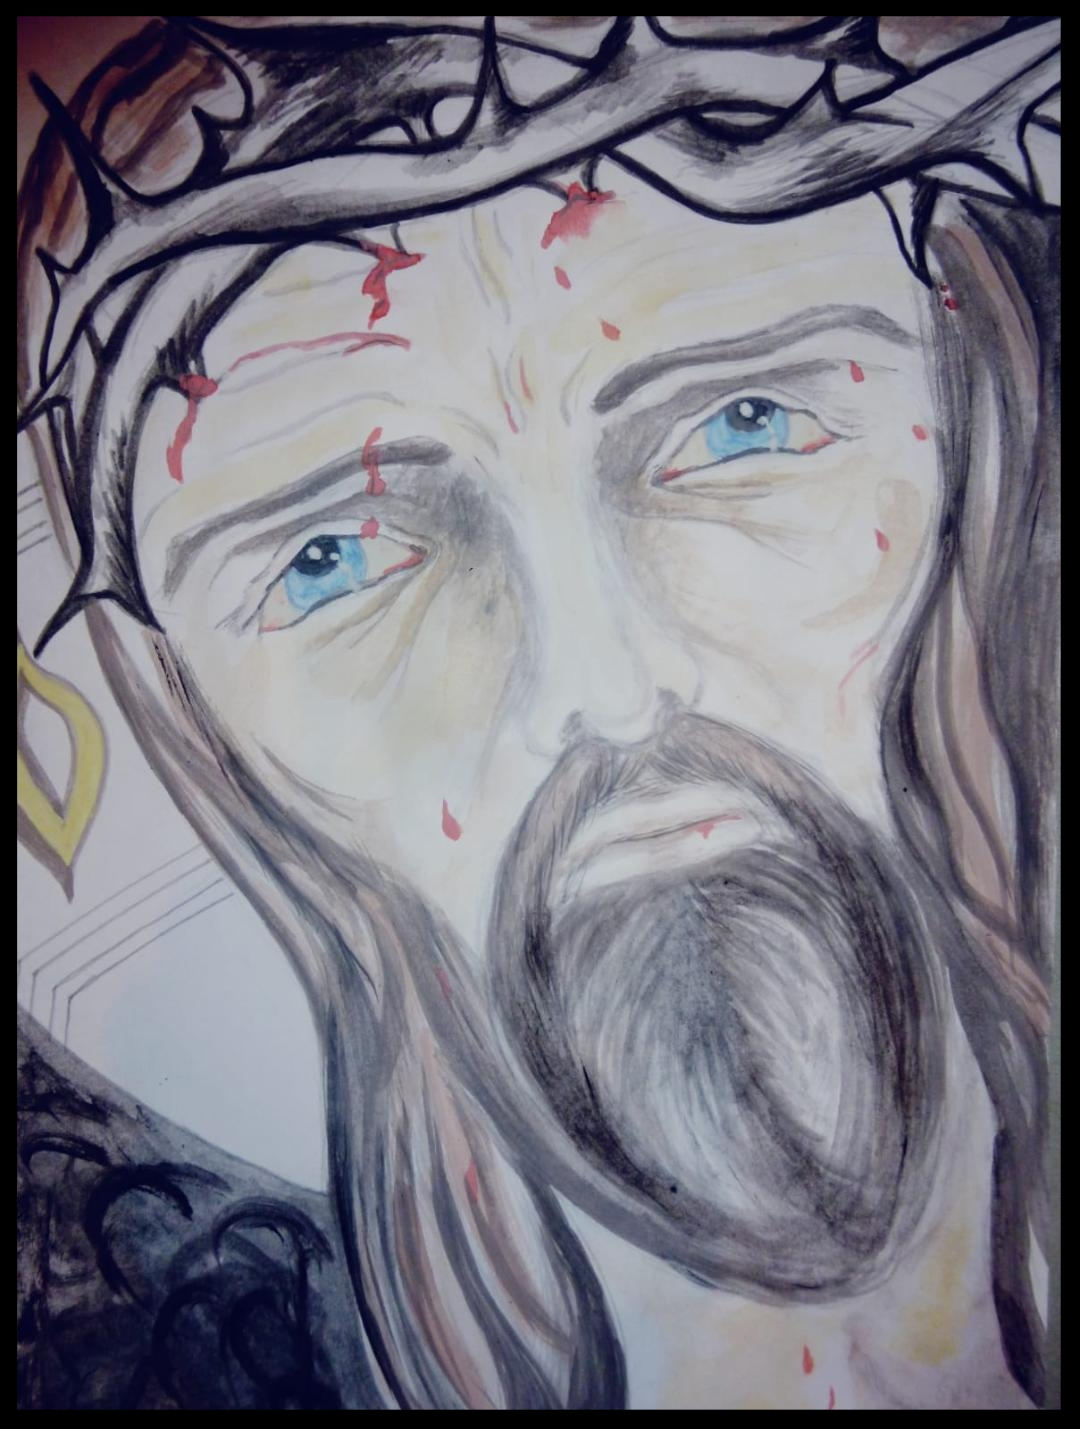 - JESUS IN PAINWATERCOLOR AND PENCIL30 CM X 22 CM